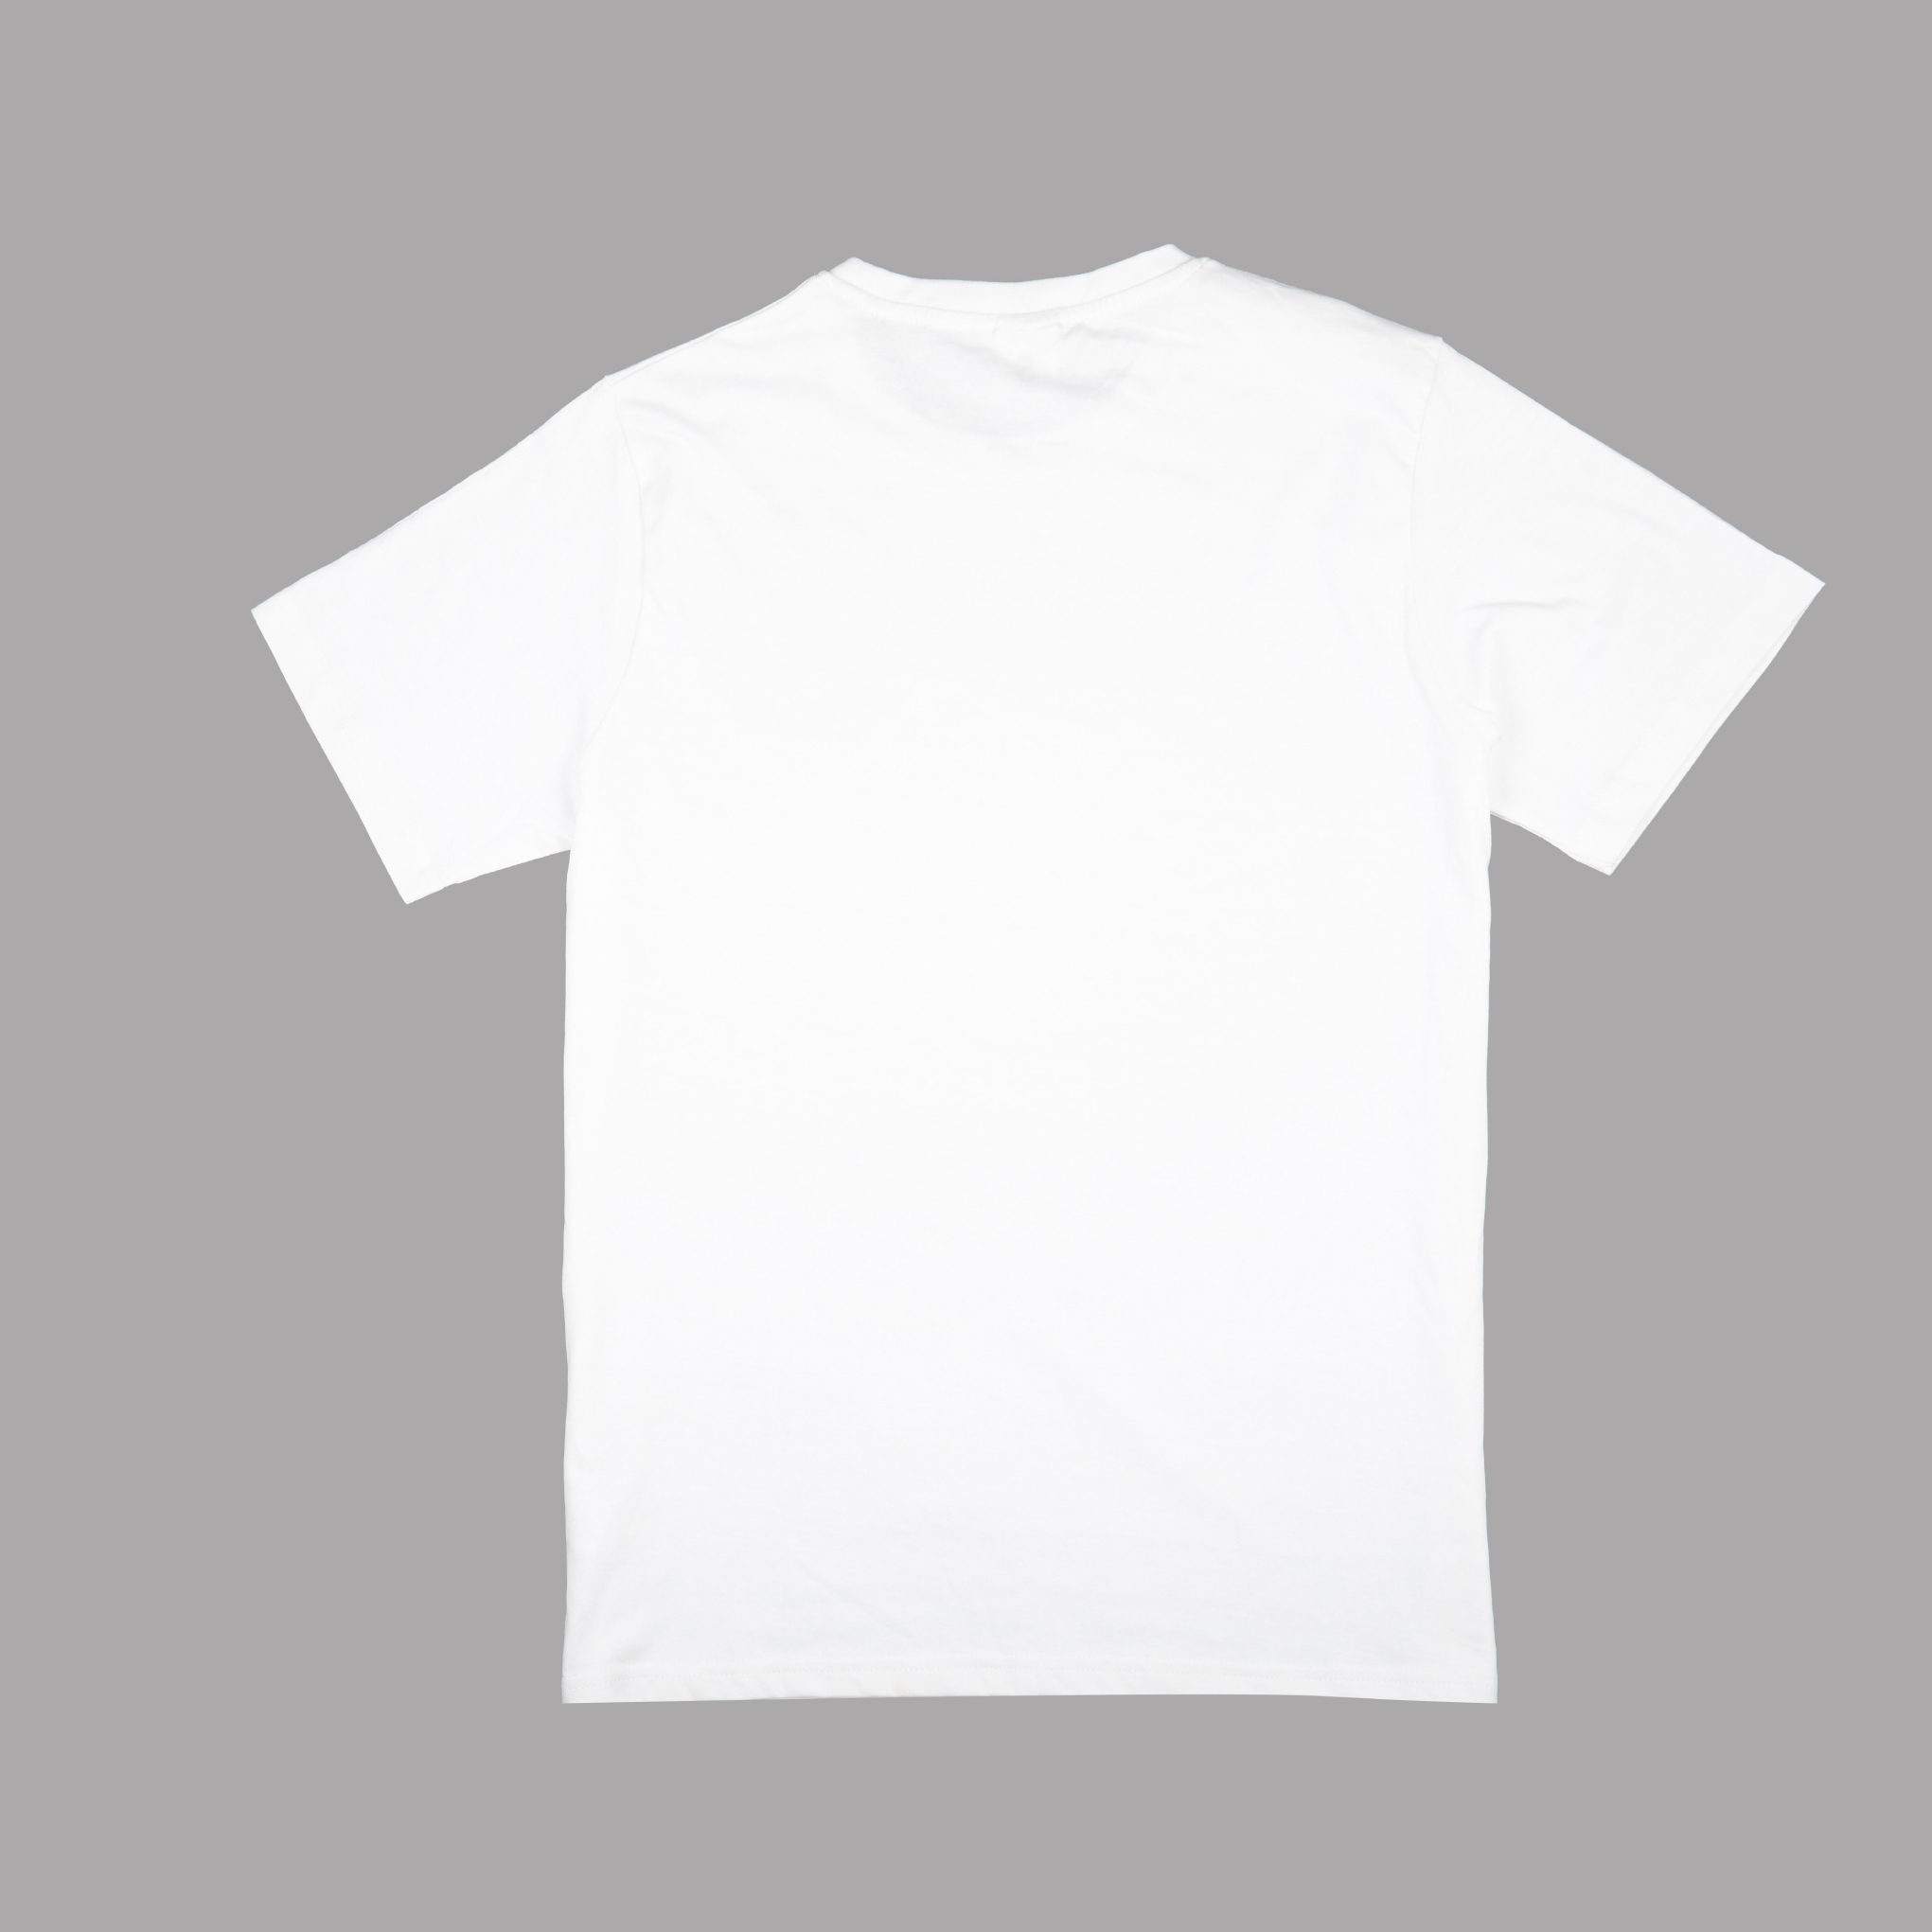 Back View white t-shirt from CDUK